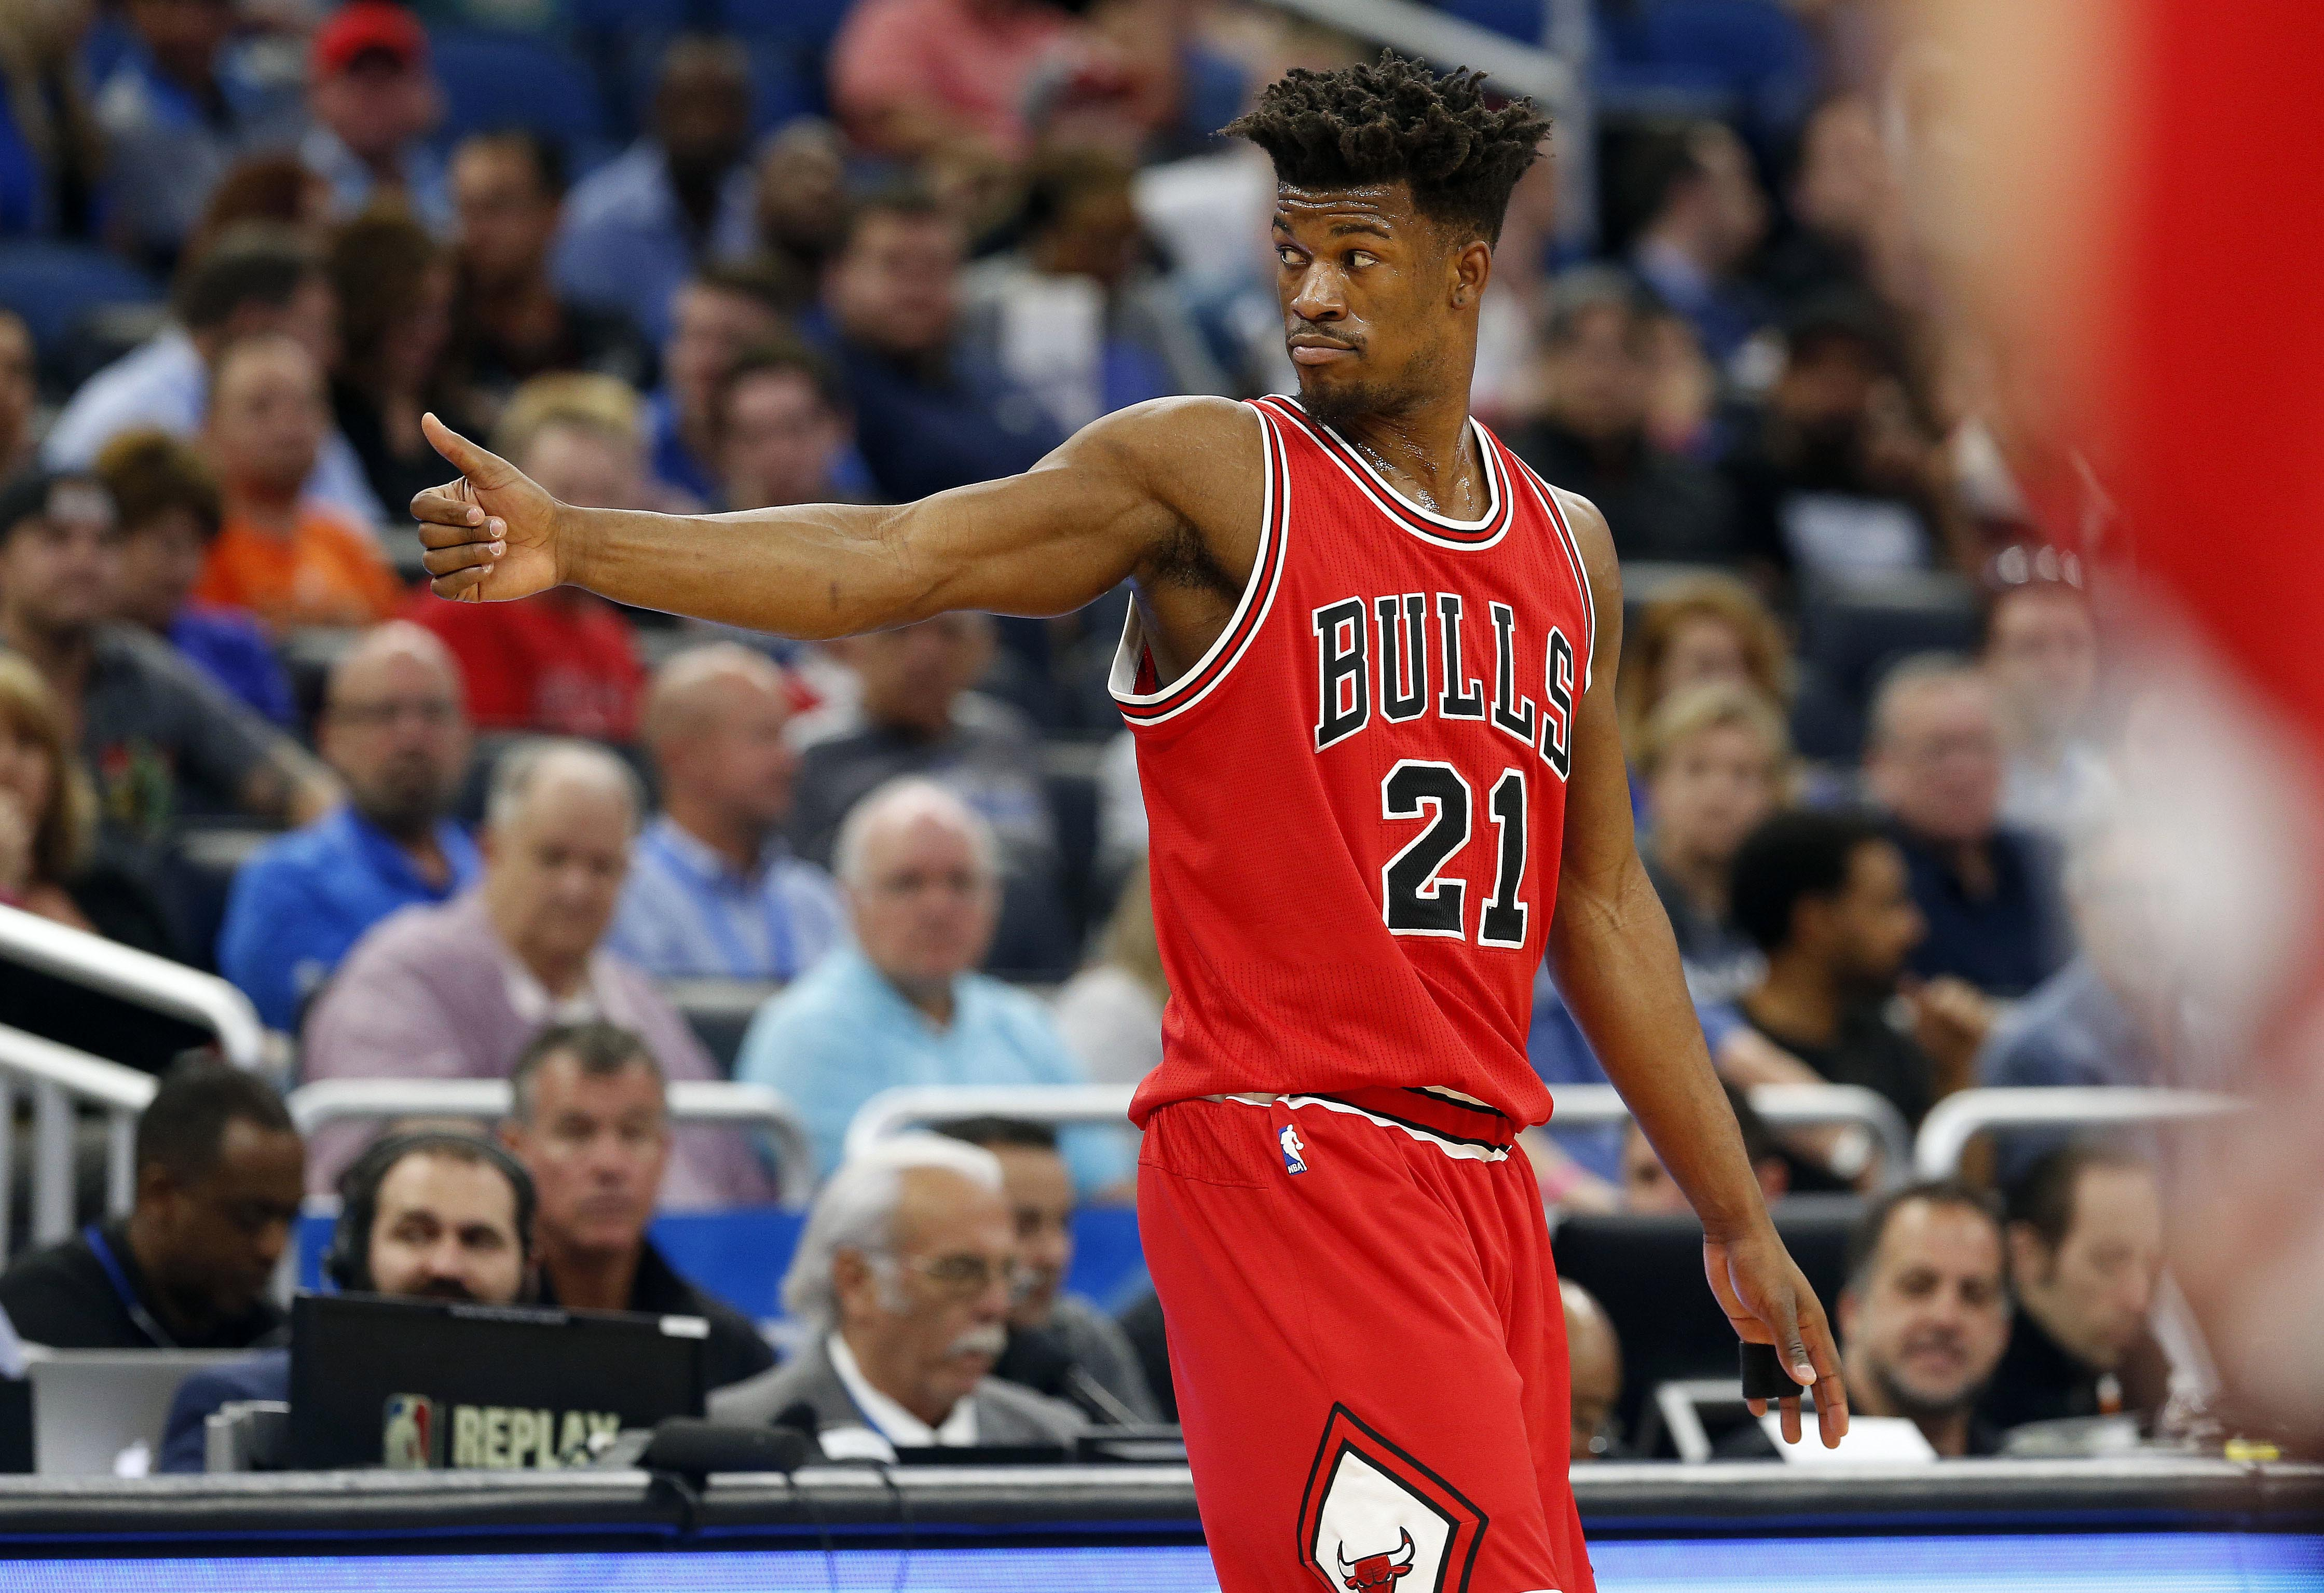 9926363-nba-chicago-bulls-at-orlando-magic